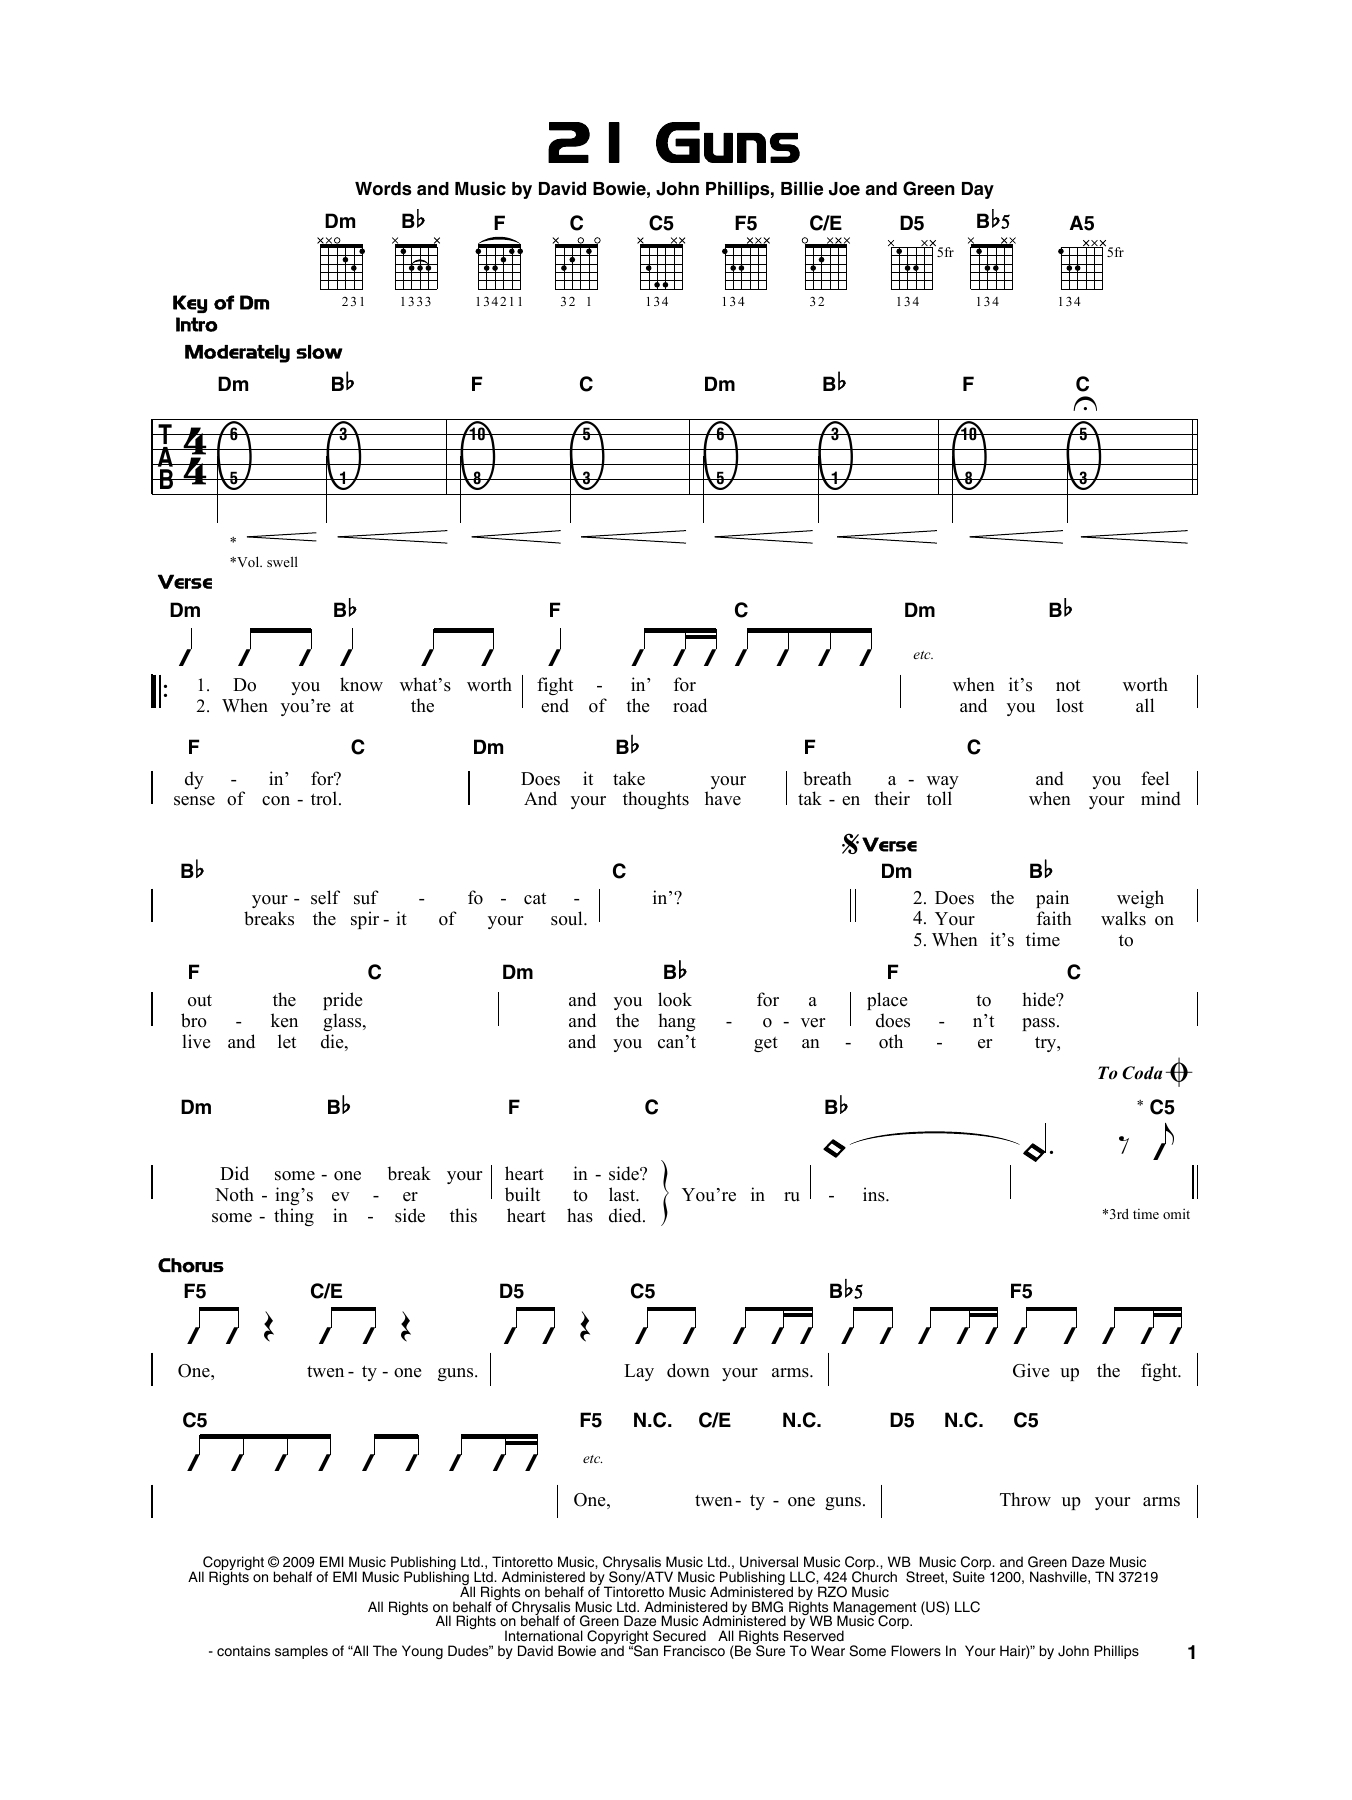 21 Guns Chords Green Day 21 Guns Sheet Music Notes Chords Download Printable Really Easy Guitar Sku 415300